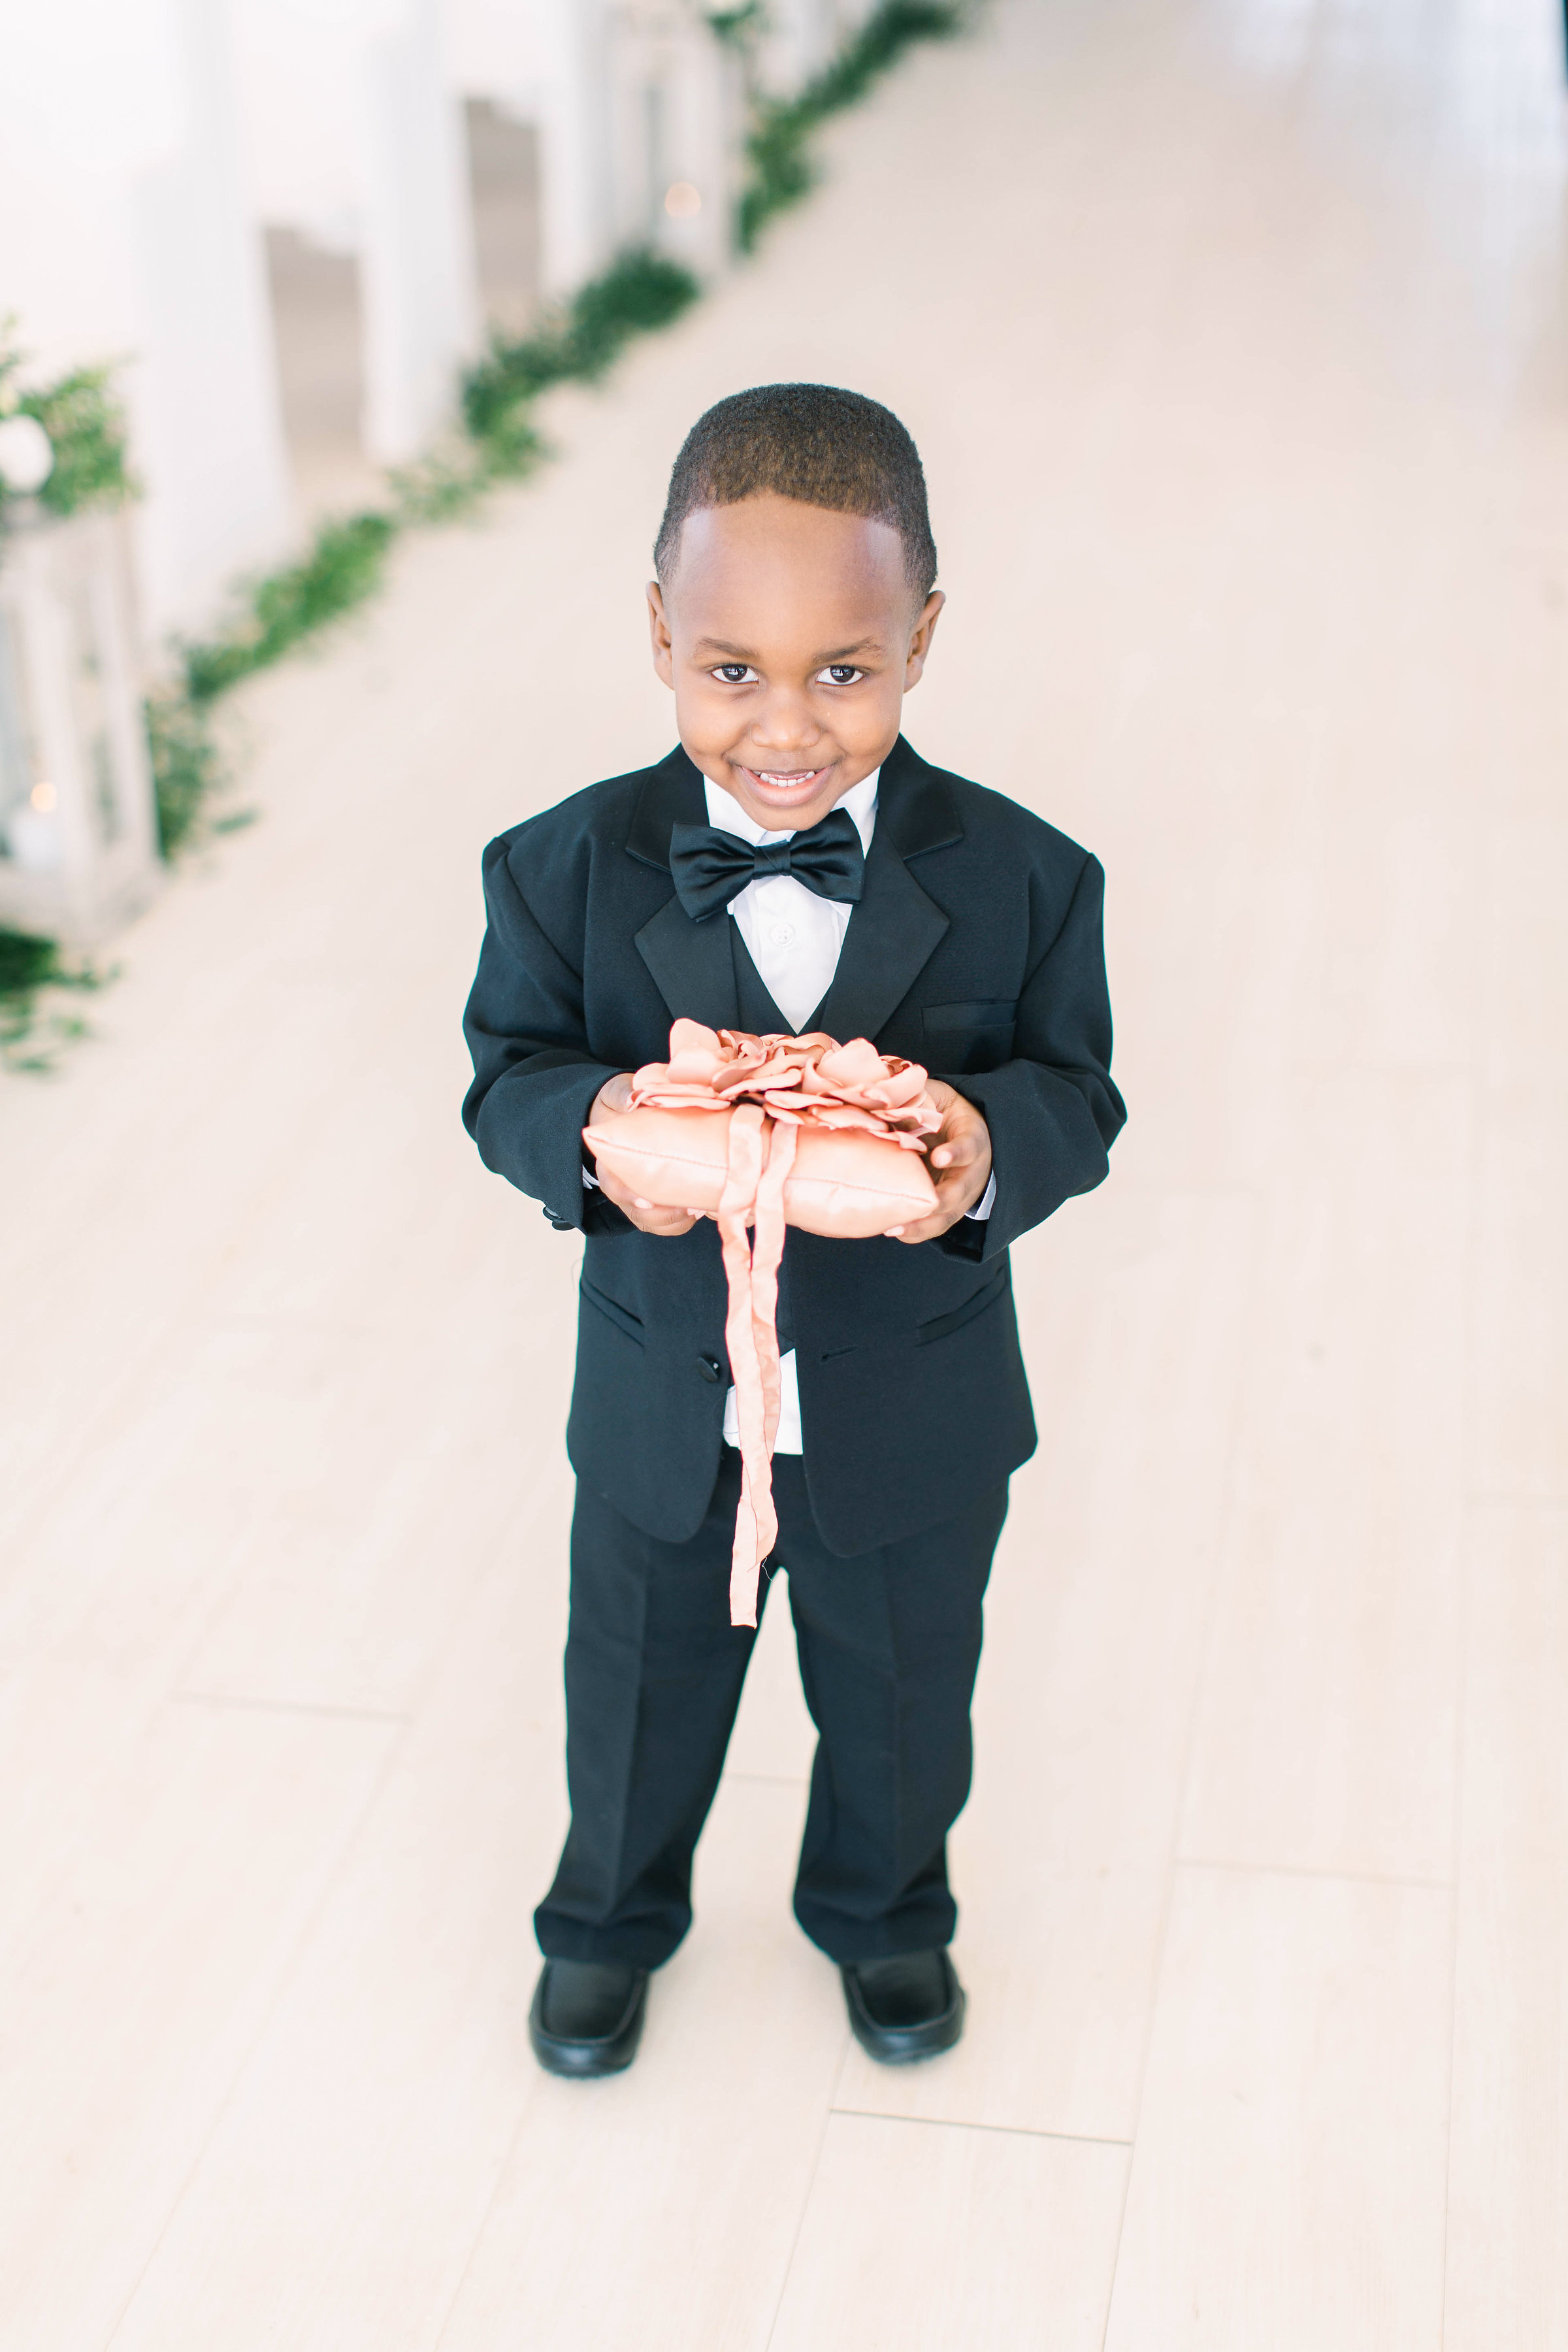 wedding young boy ring bearer with pink pillow